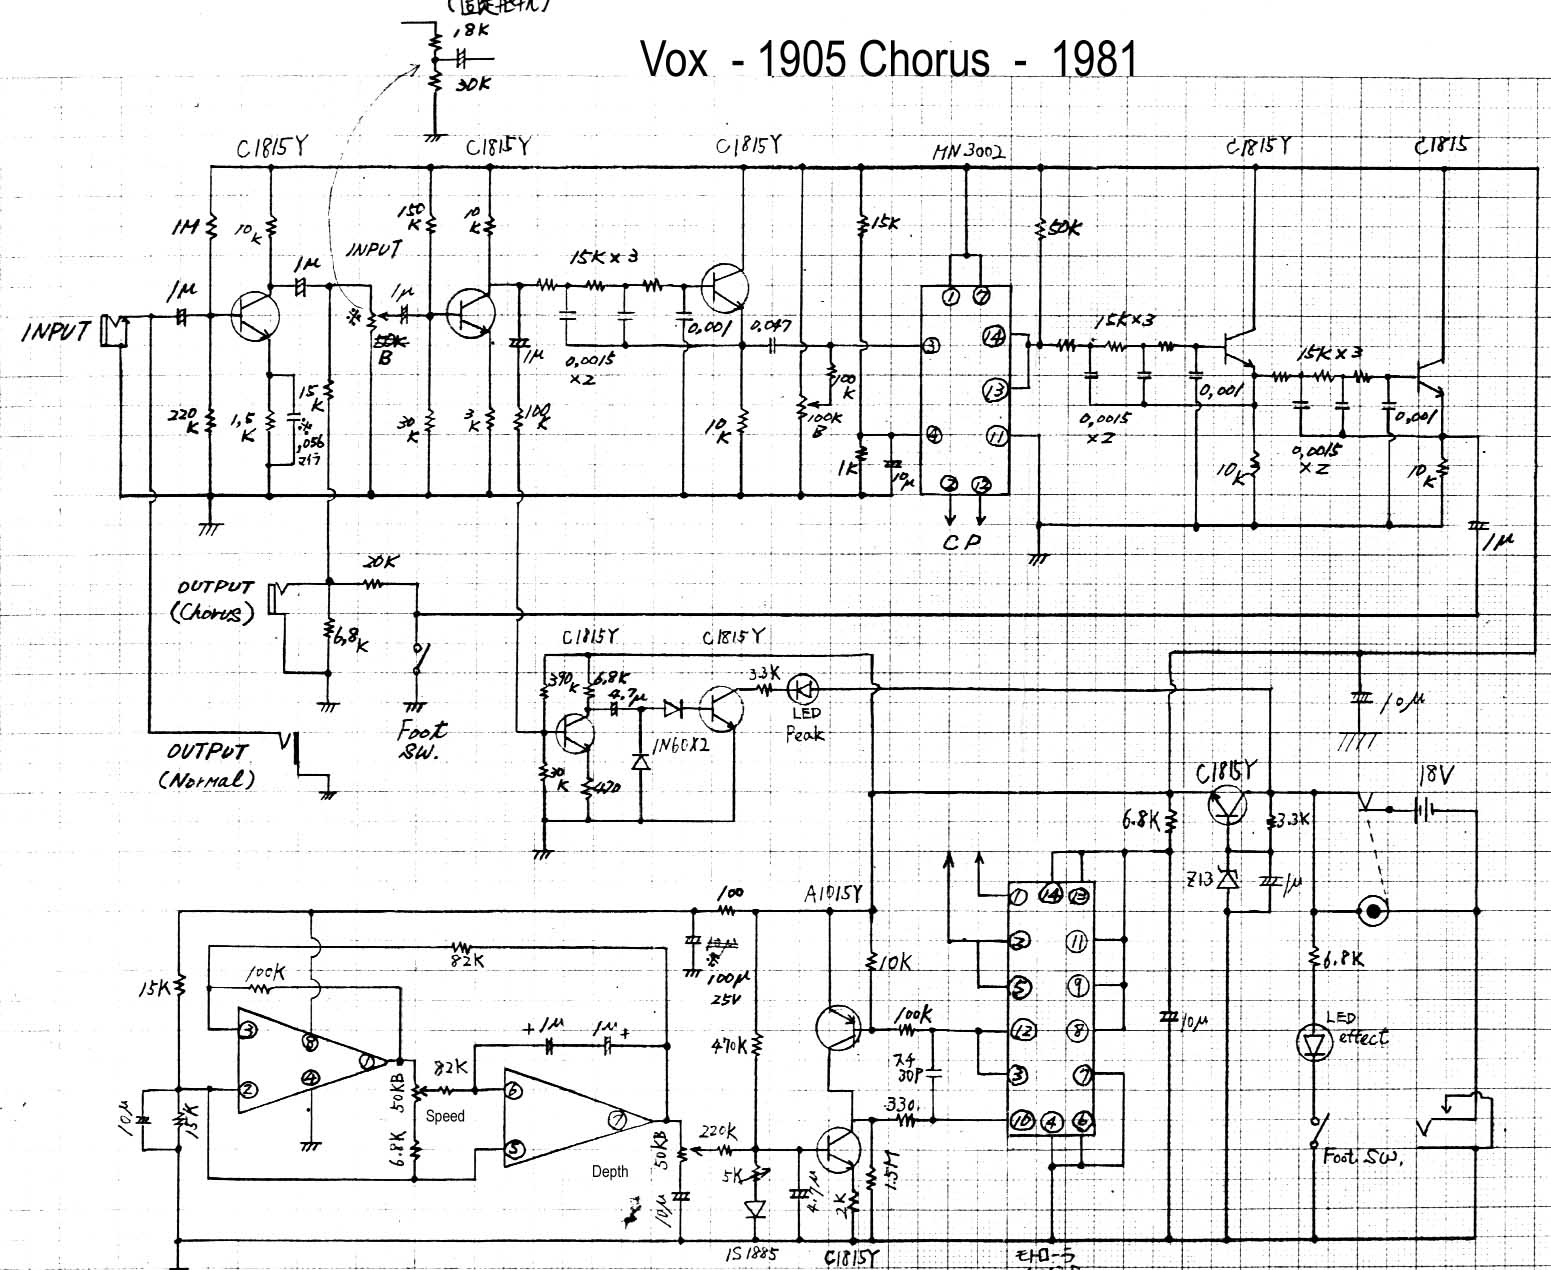 Vox Vintage Circuit Diagrams Together With Overdrive Pedal Schematic On Dc To Ac Diagram Chorus Model 1905 1981 Download